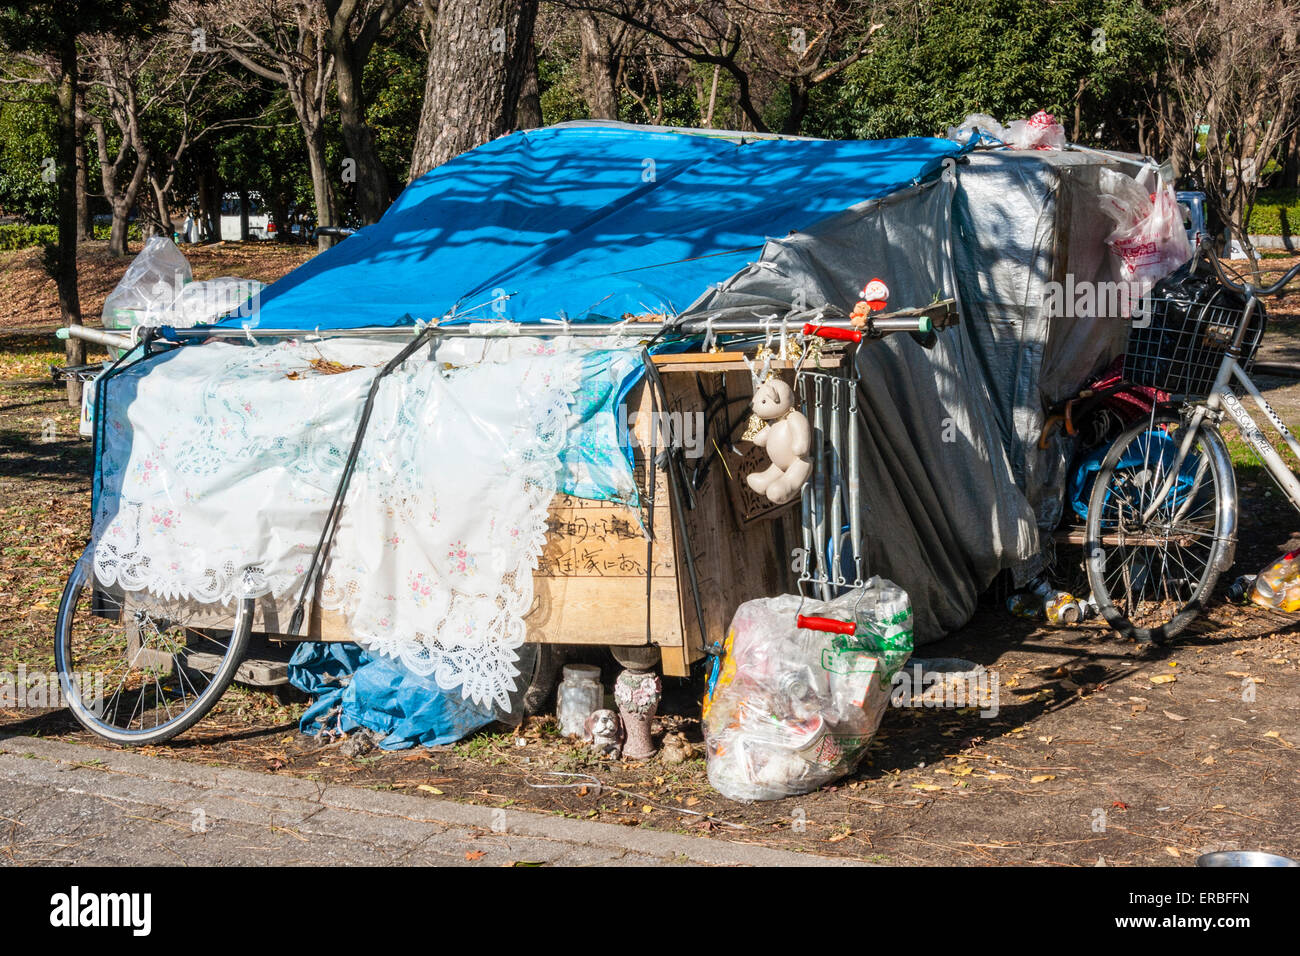 Japan, Nagoya. Typical blue tarpaulin homeless shelter in the park, belongings neatly stored outside, bike and bags - Stock Image